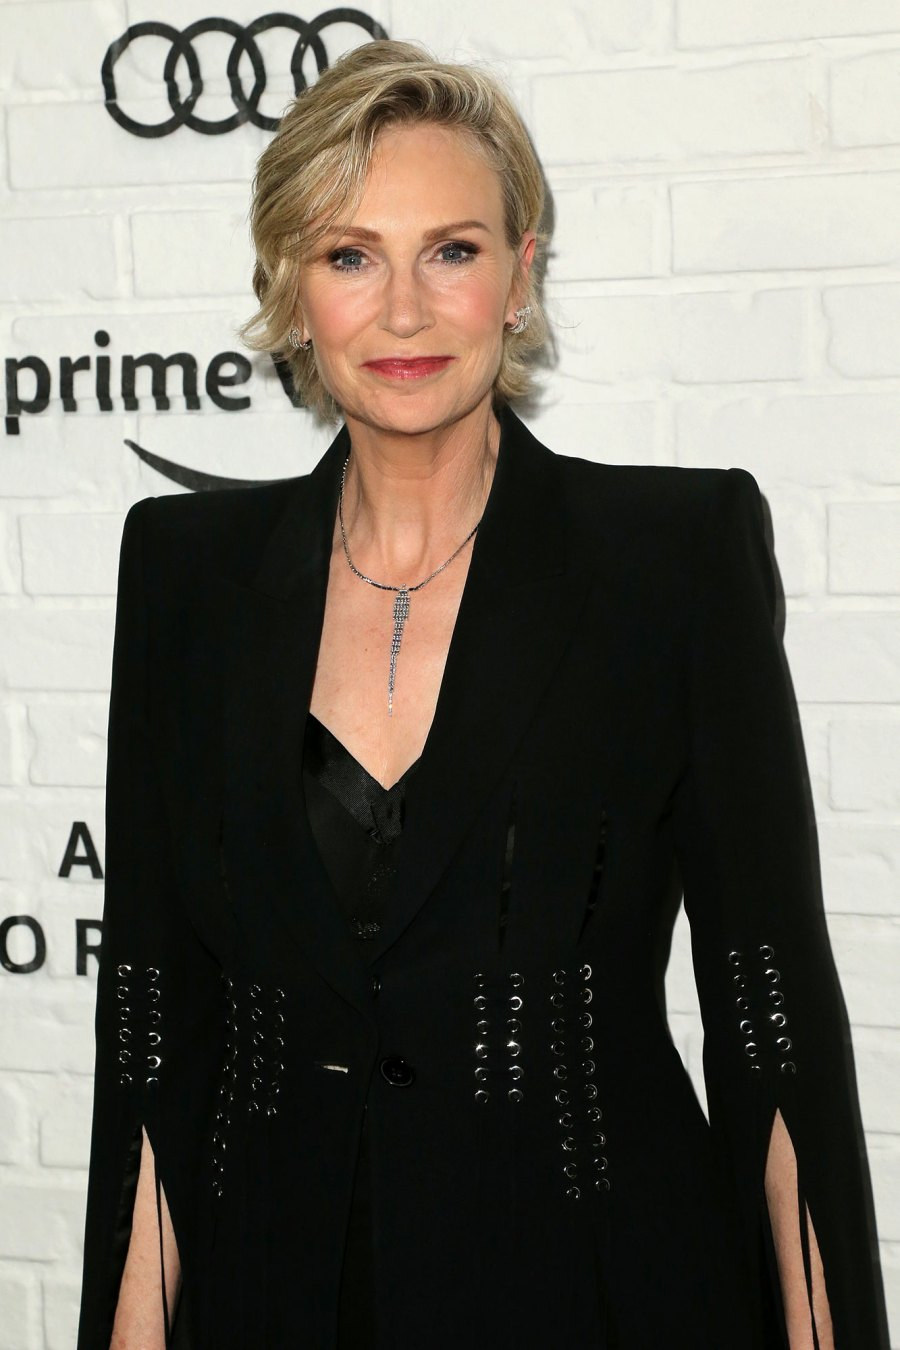 Jane Lynch What You Didn't See on TV Gallery Emmys 2019